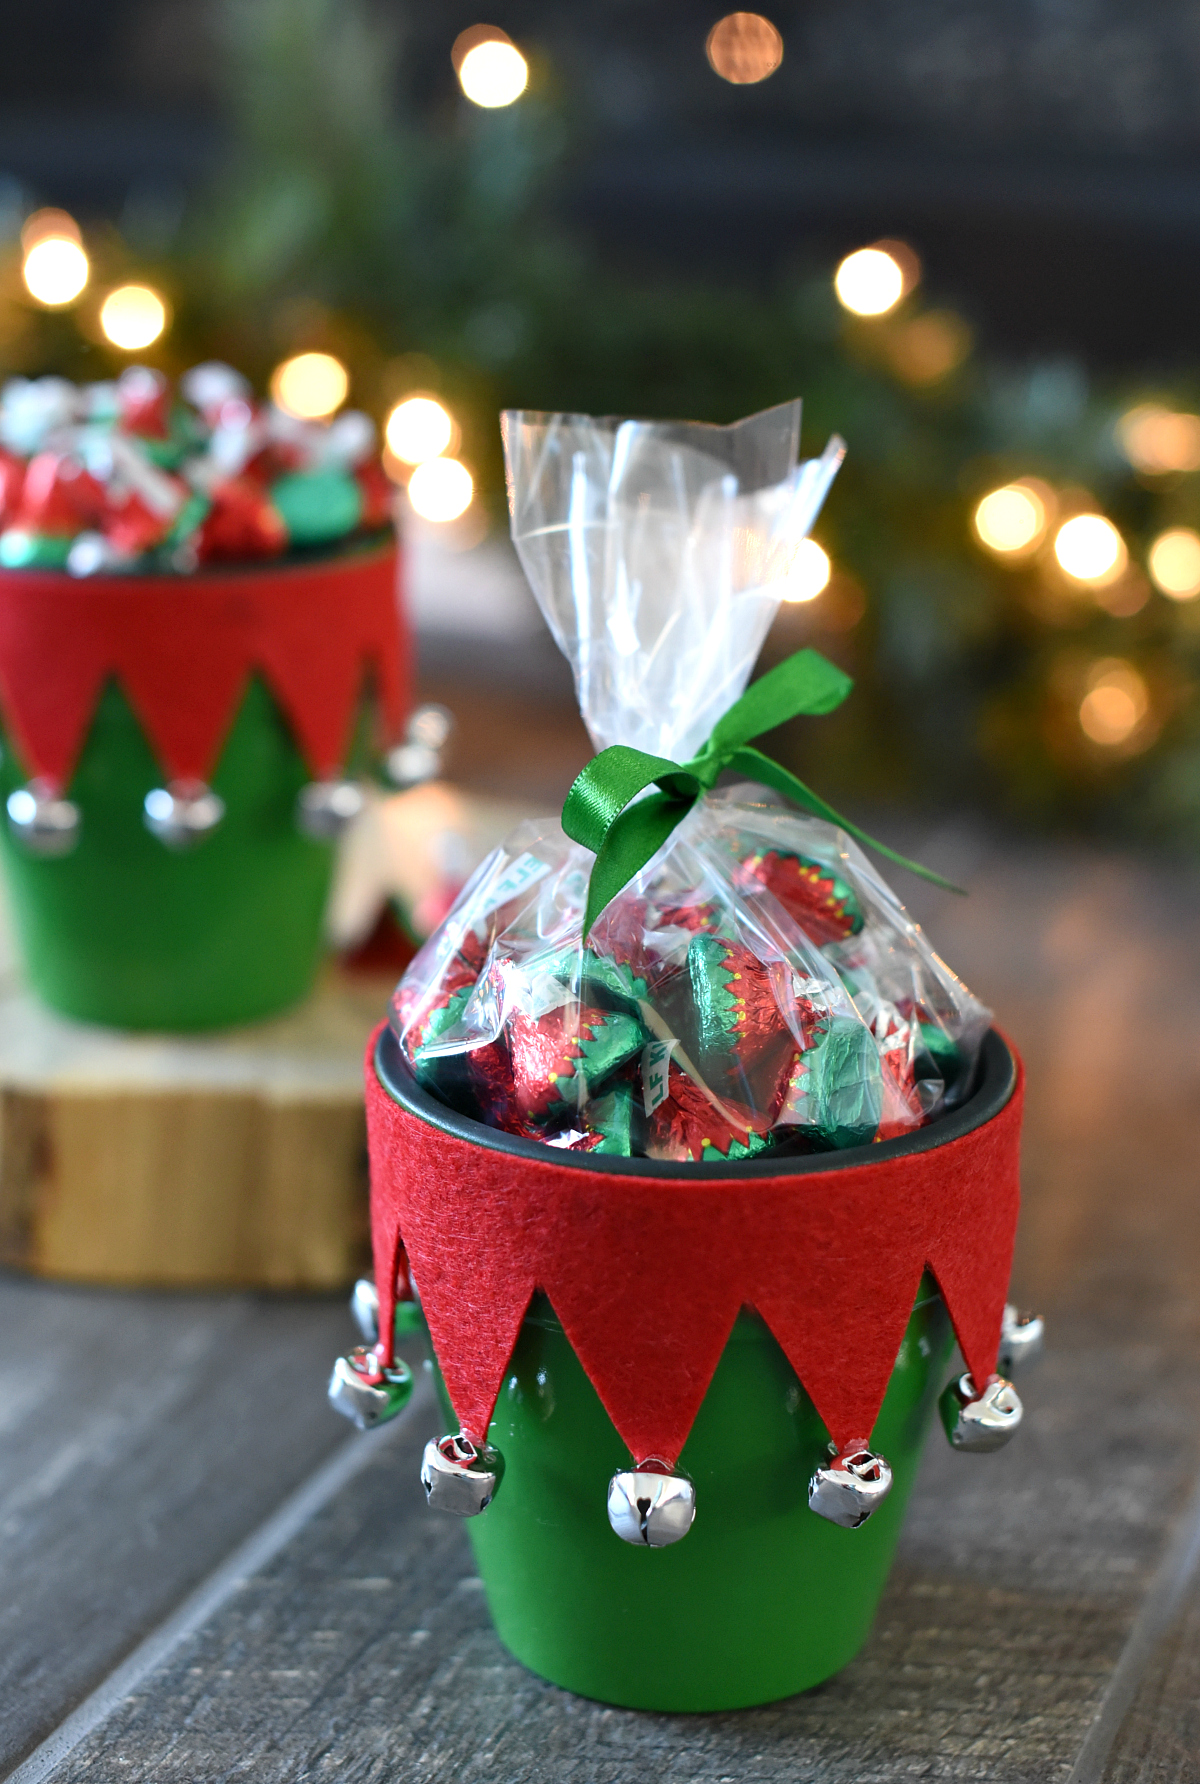 Elf Themed Gift for Neighbors or Friends